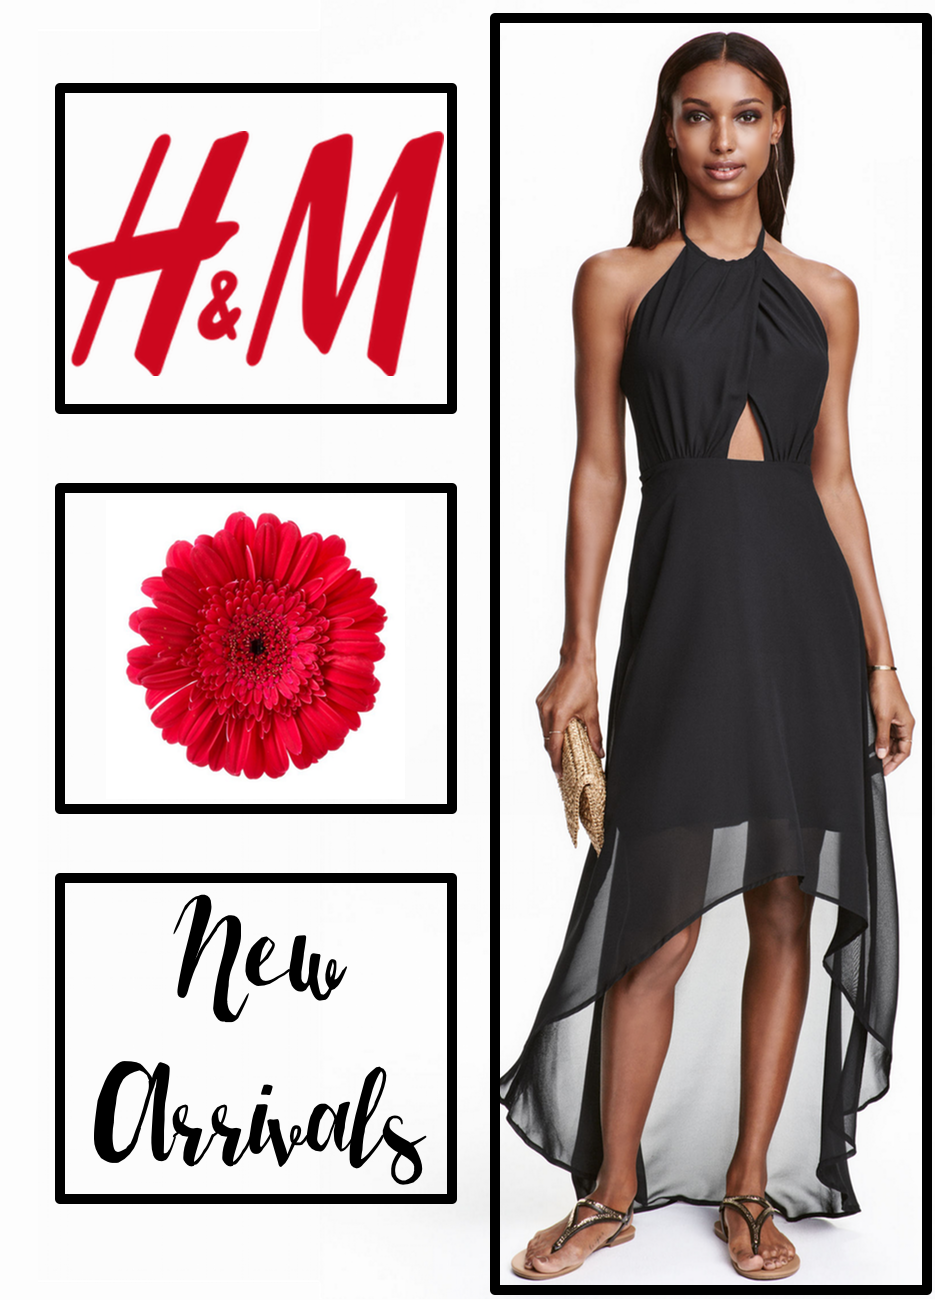 H&M Chiffon Black Dress